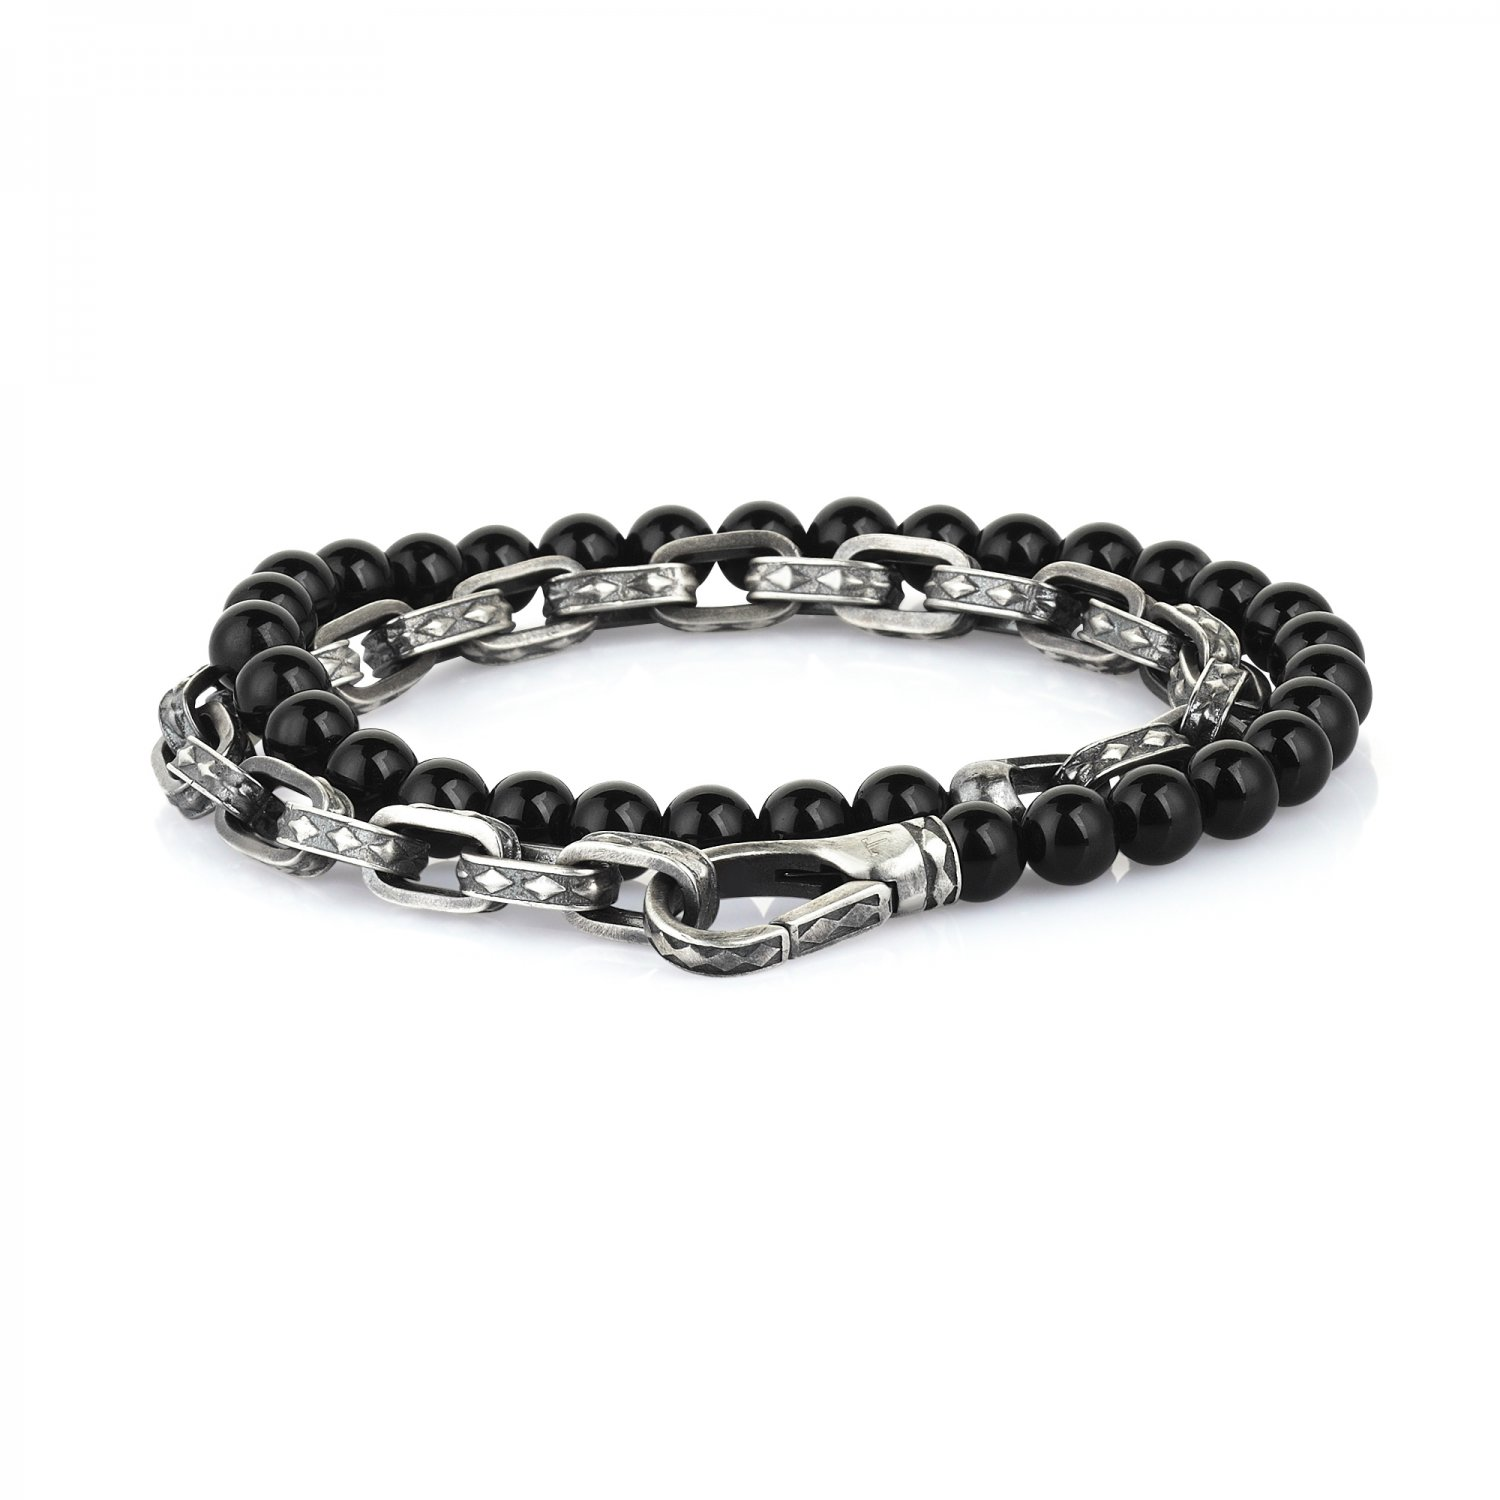 Oxidised Silver Cubic Chain Bracelet with Black Onyx Beads, 6.00mm